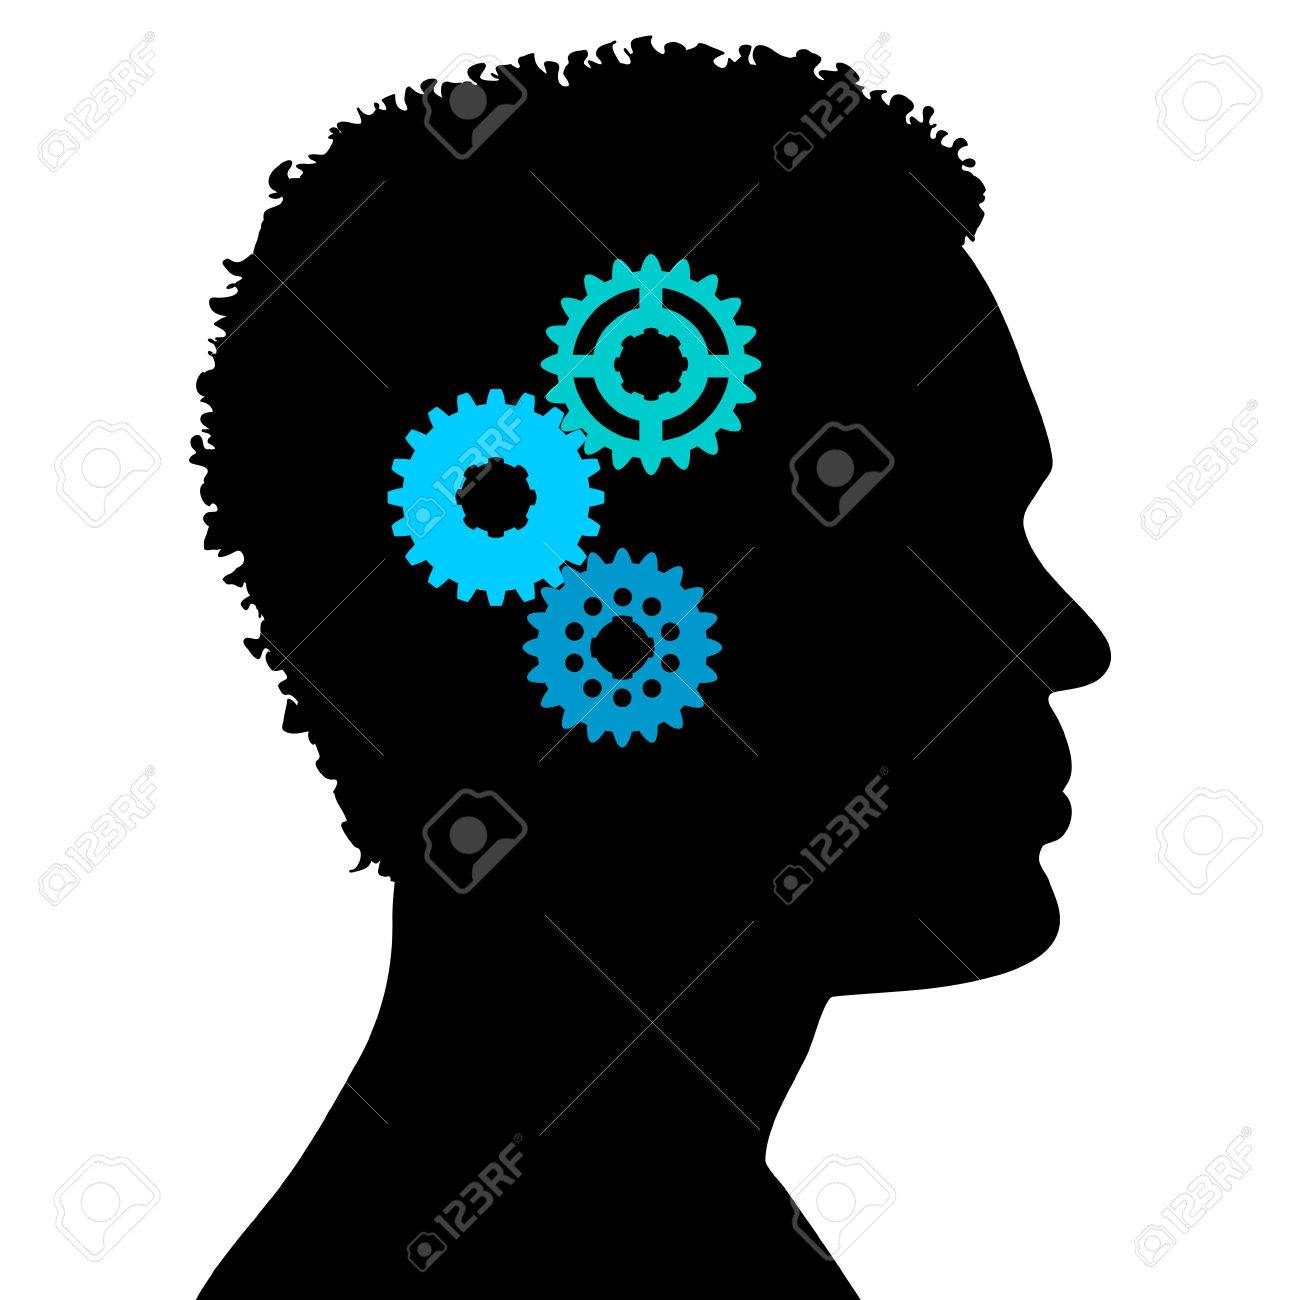 Black Silhouette Thinking Person On White Background Royalty Free ... for Person Thinking Silhouette  186ref